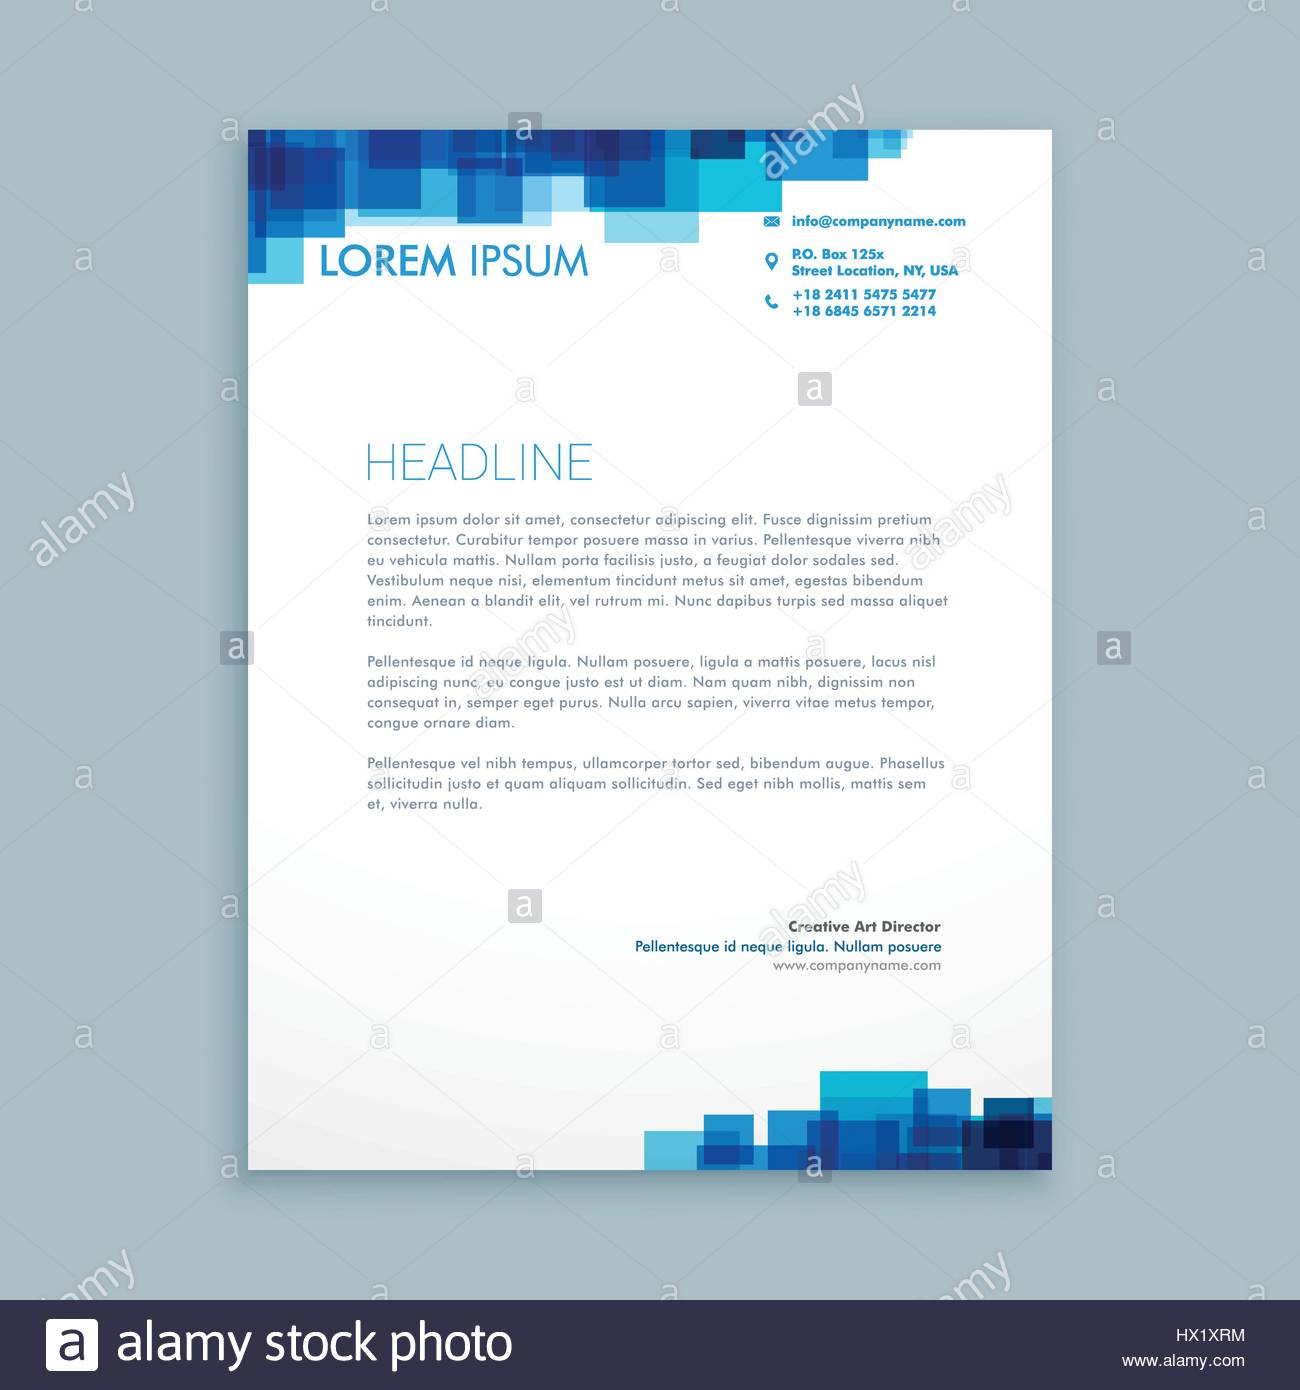 Abstract coporate business letterhead template vector design stock abstract coporate business letterhead template vector design illustration cheaphphosting Gallery